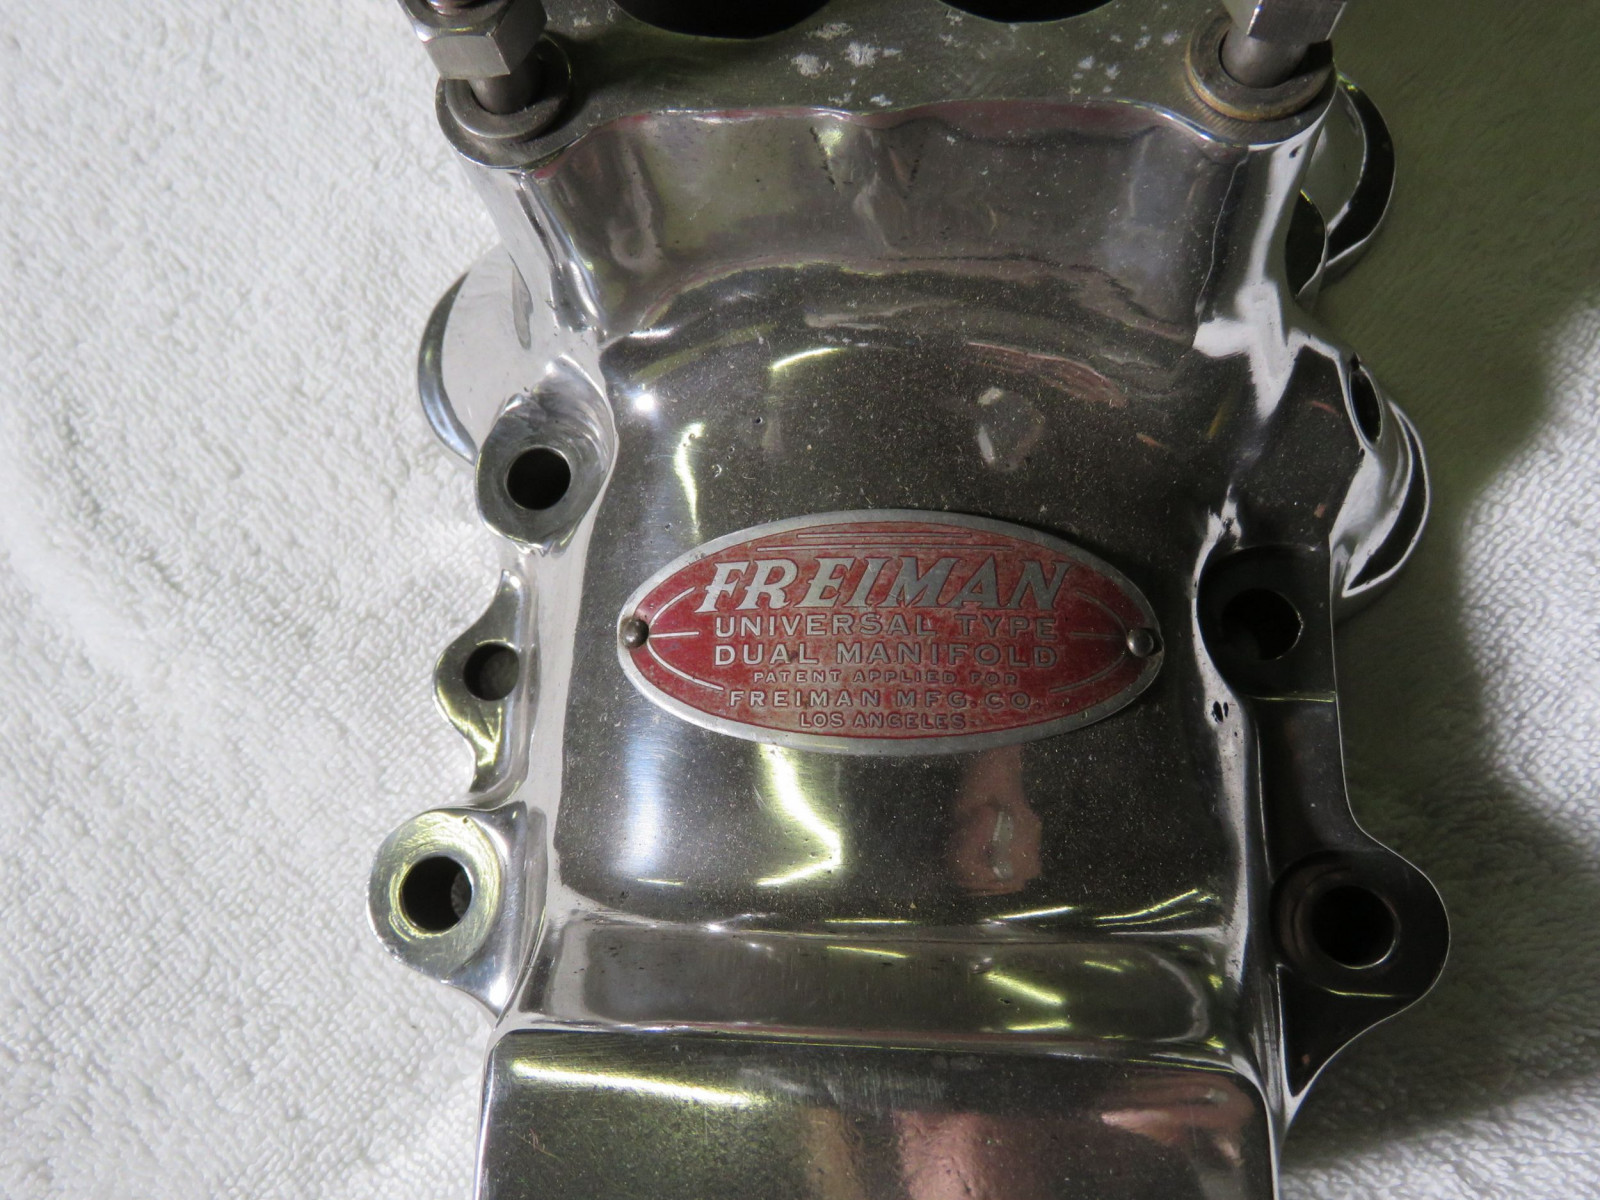 Rare Freiman Universal Type Dual Manifold Flathead Ford - Image 2